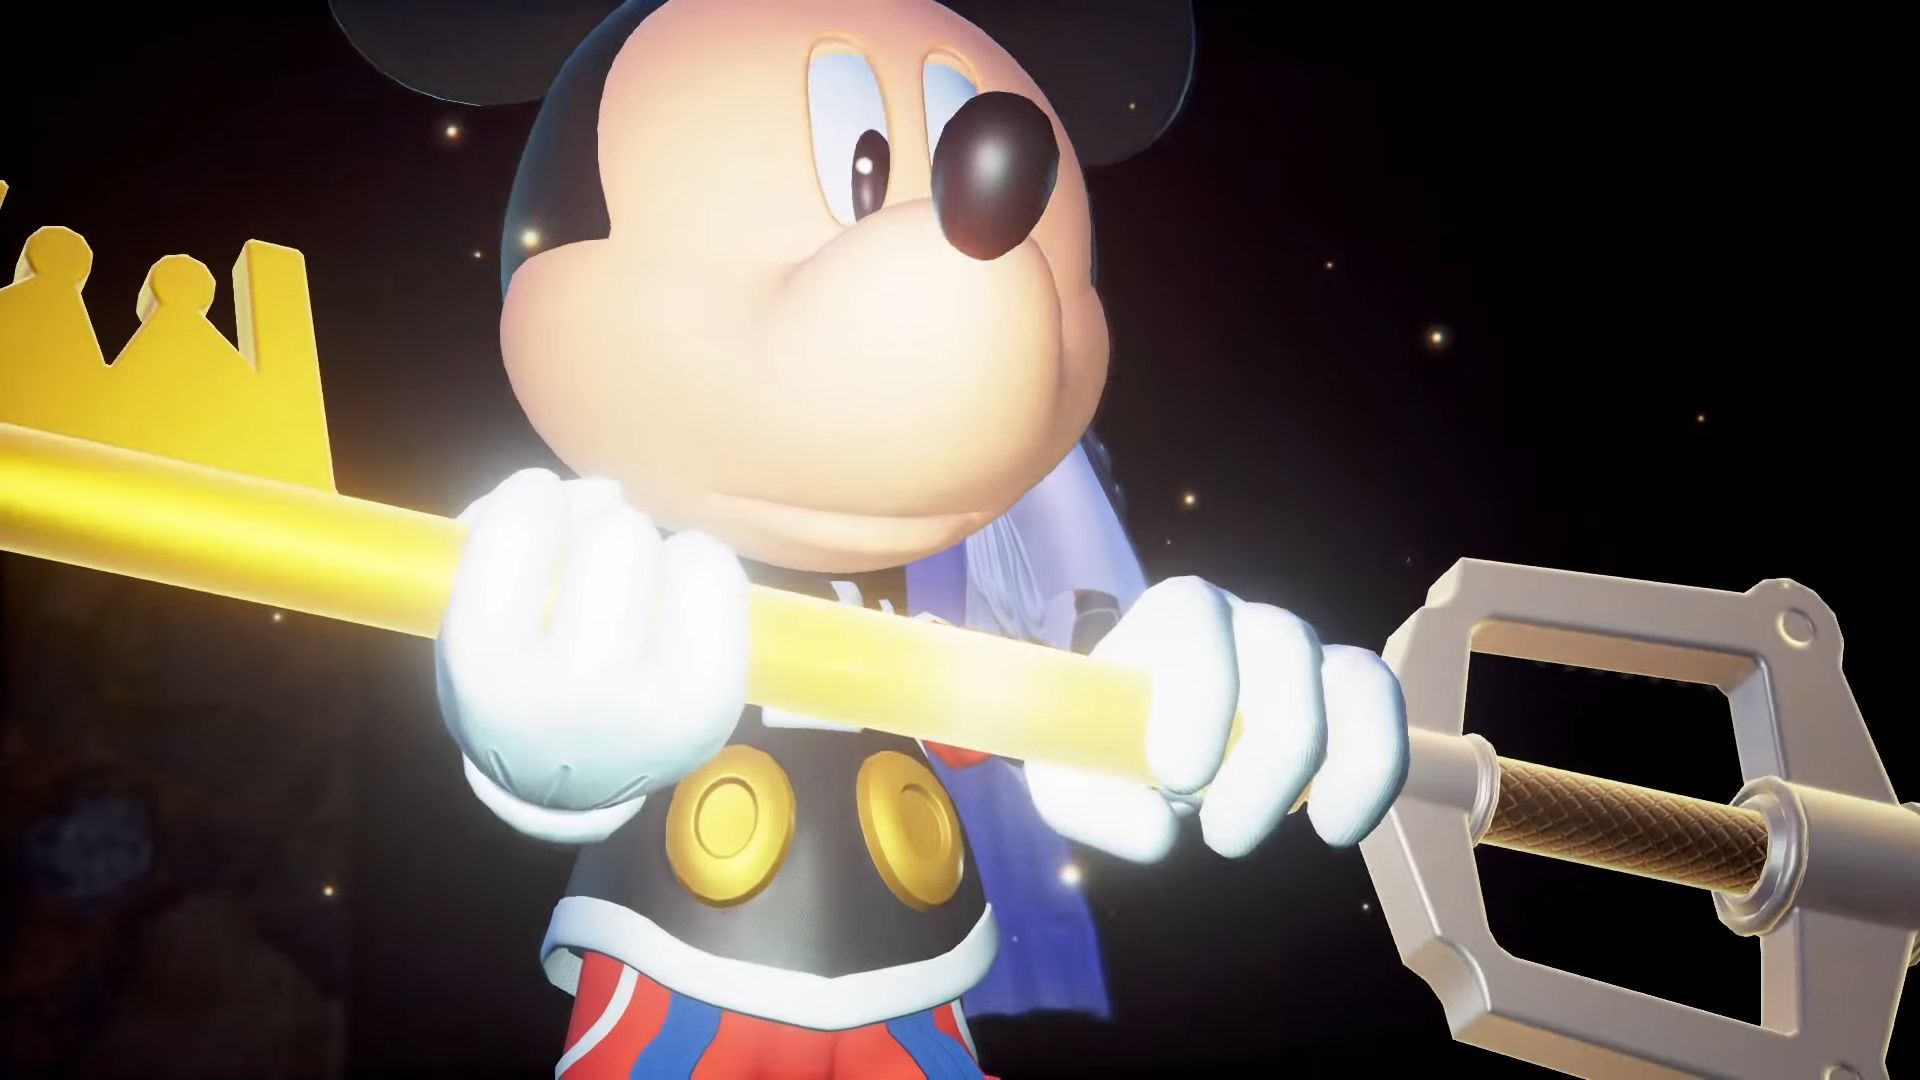 kingdom hearts 1.5 and 2.5 ps4 guide